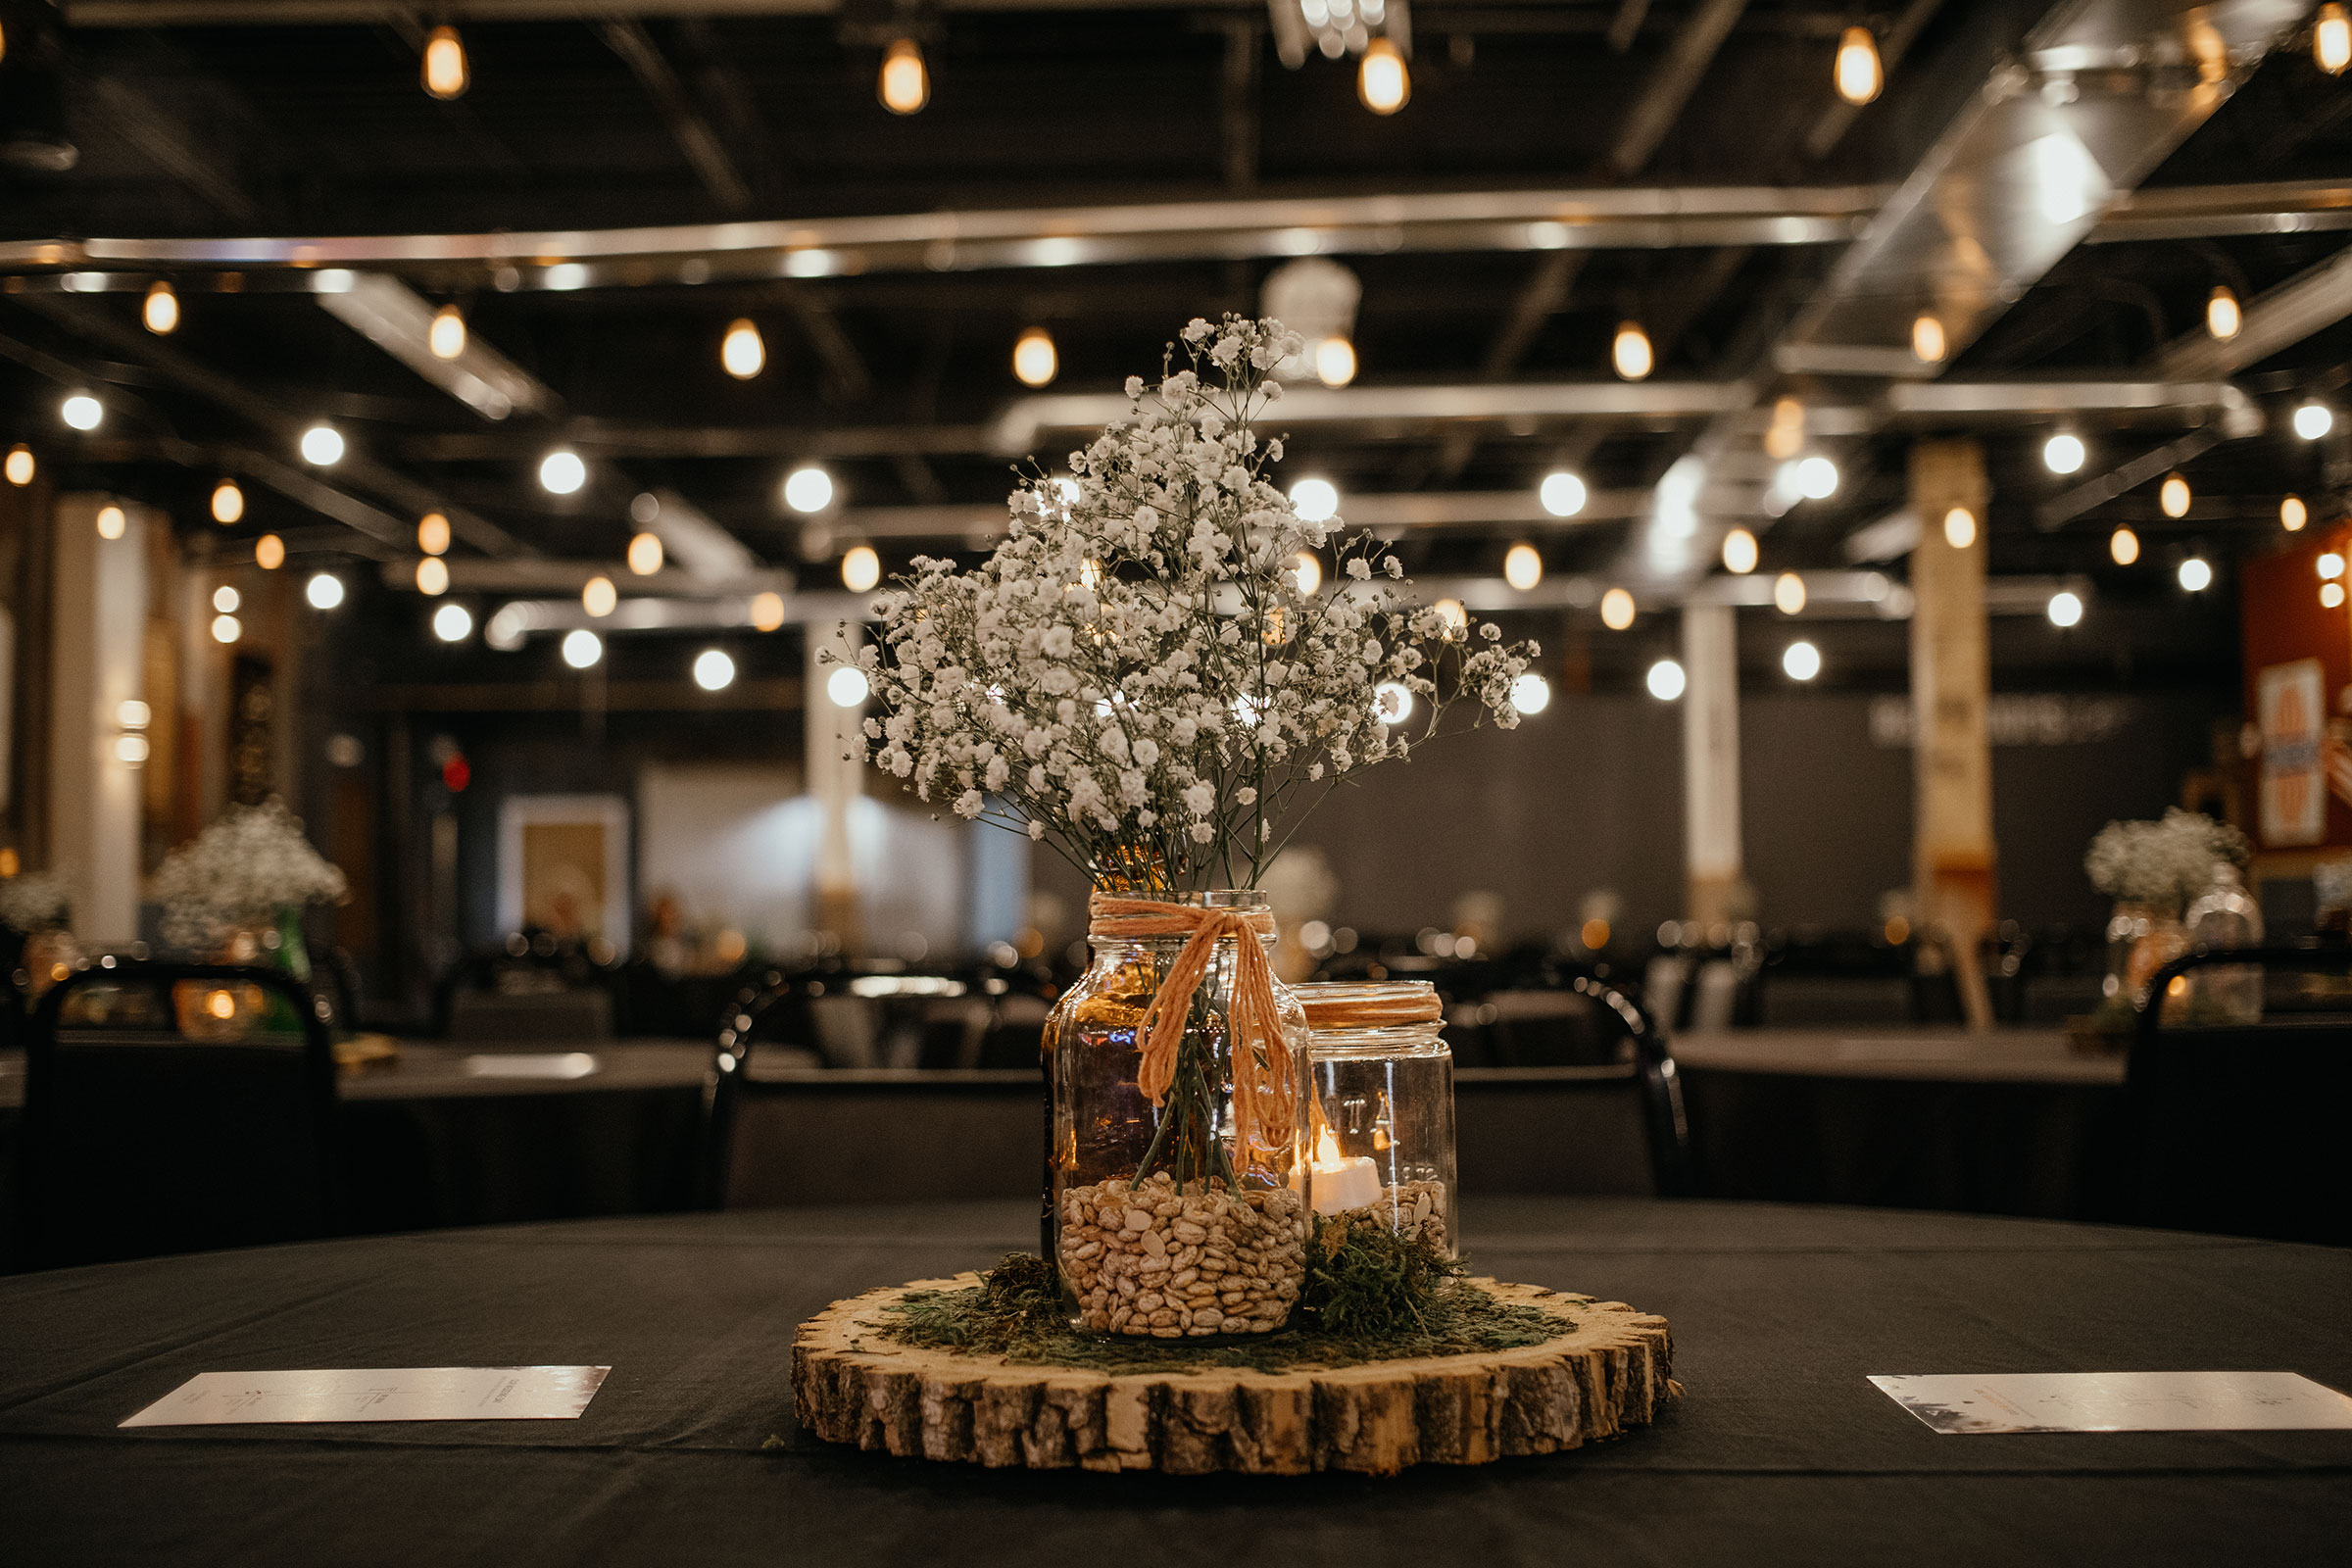 detail-shot-of-table-decorations-decades-event-center-building-desmoines-iowa-raelyn-ramey-photography..jpg